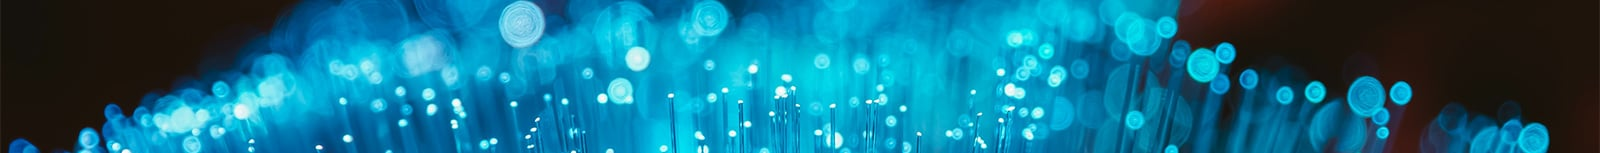 internet-service-fiber-optic-high-speed